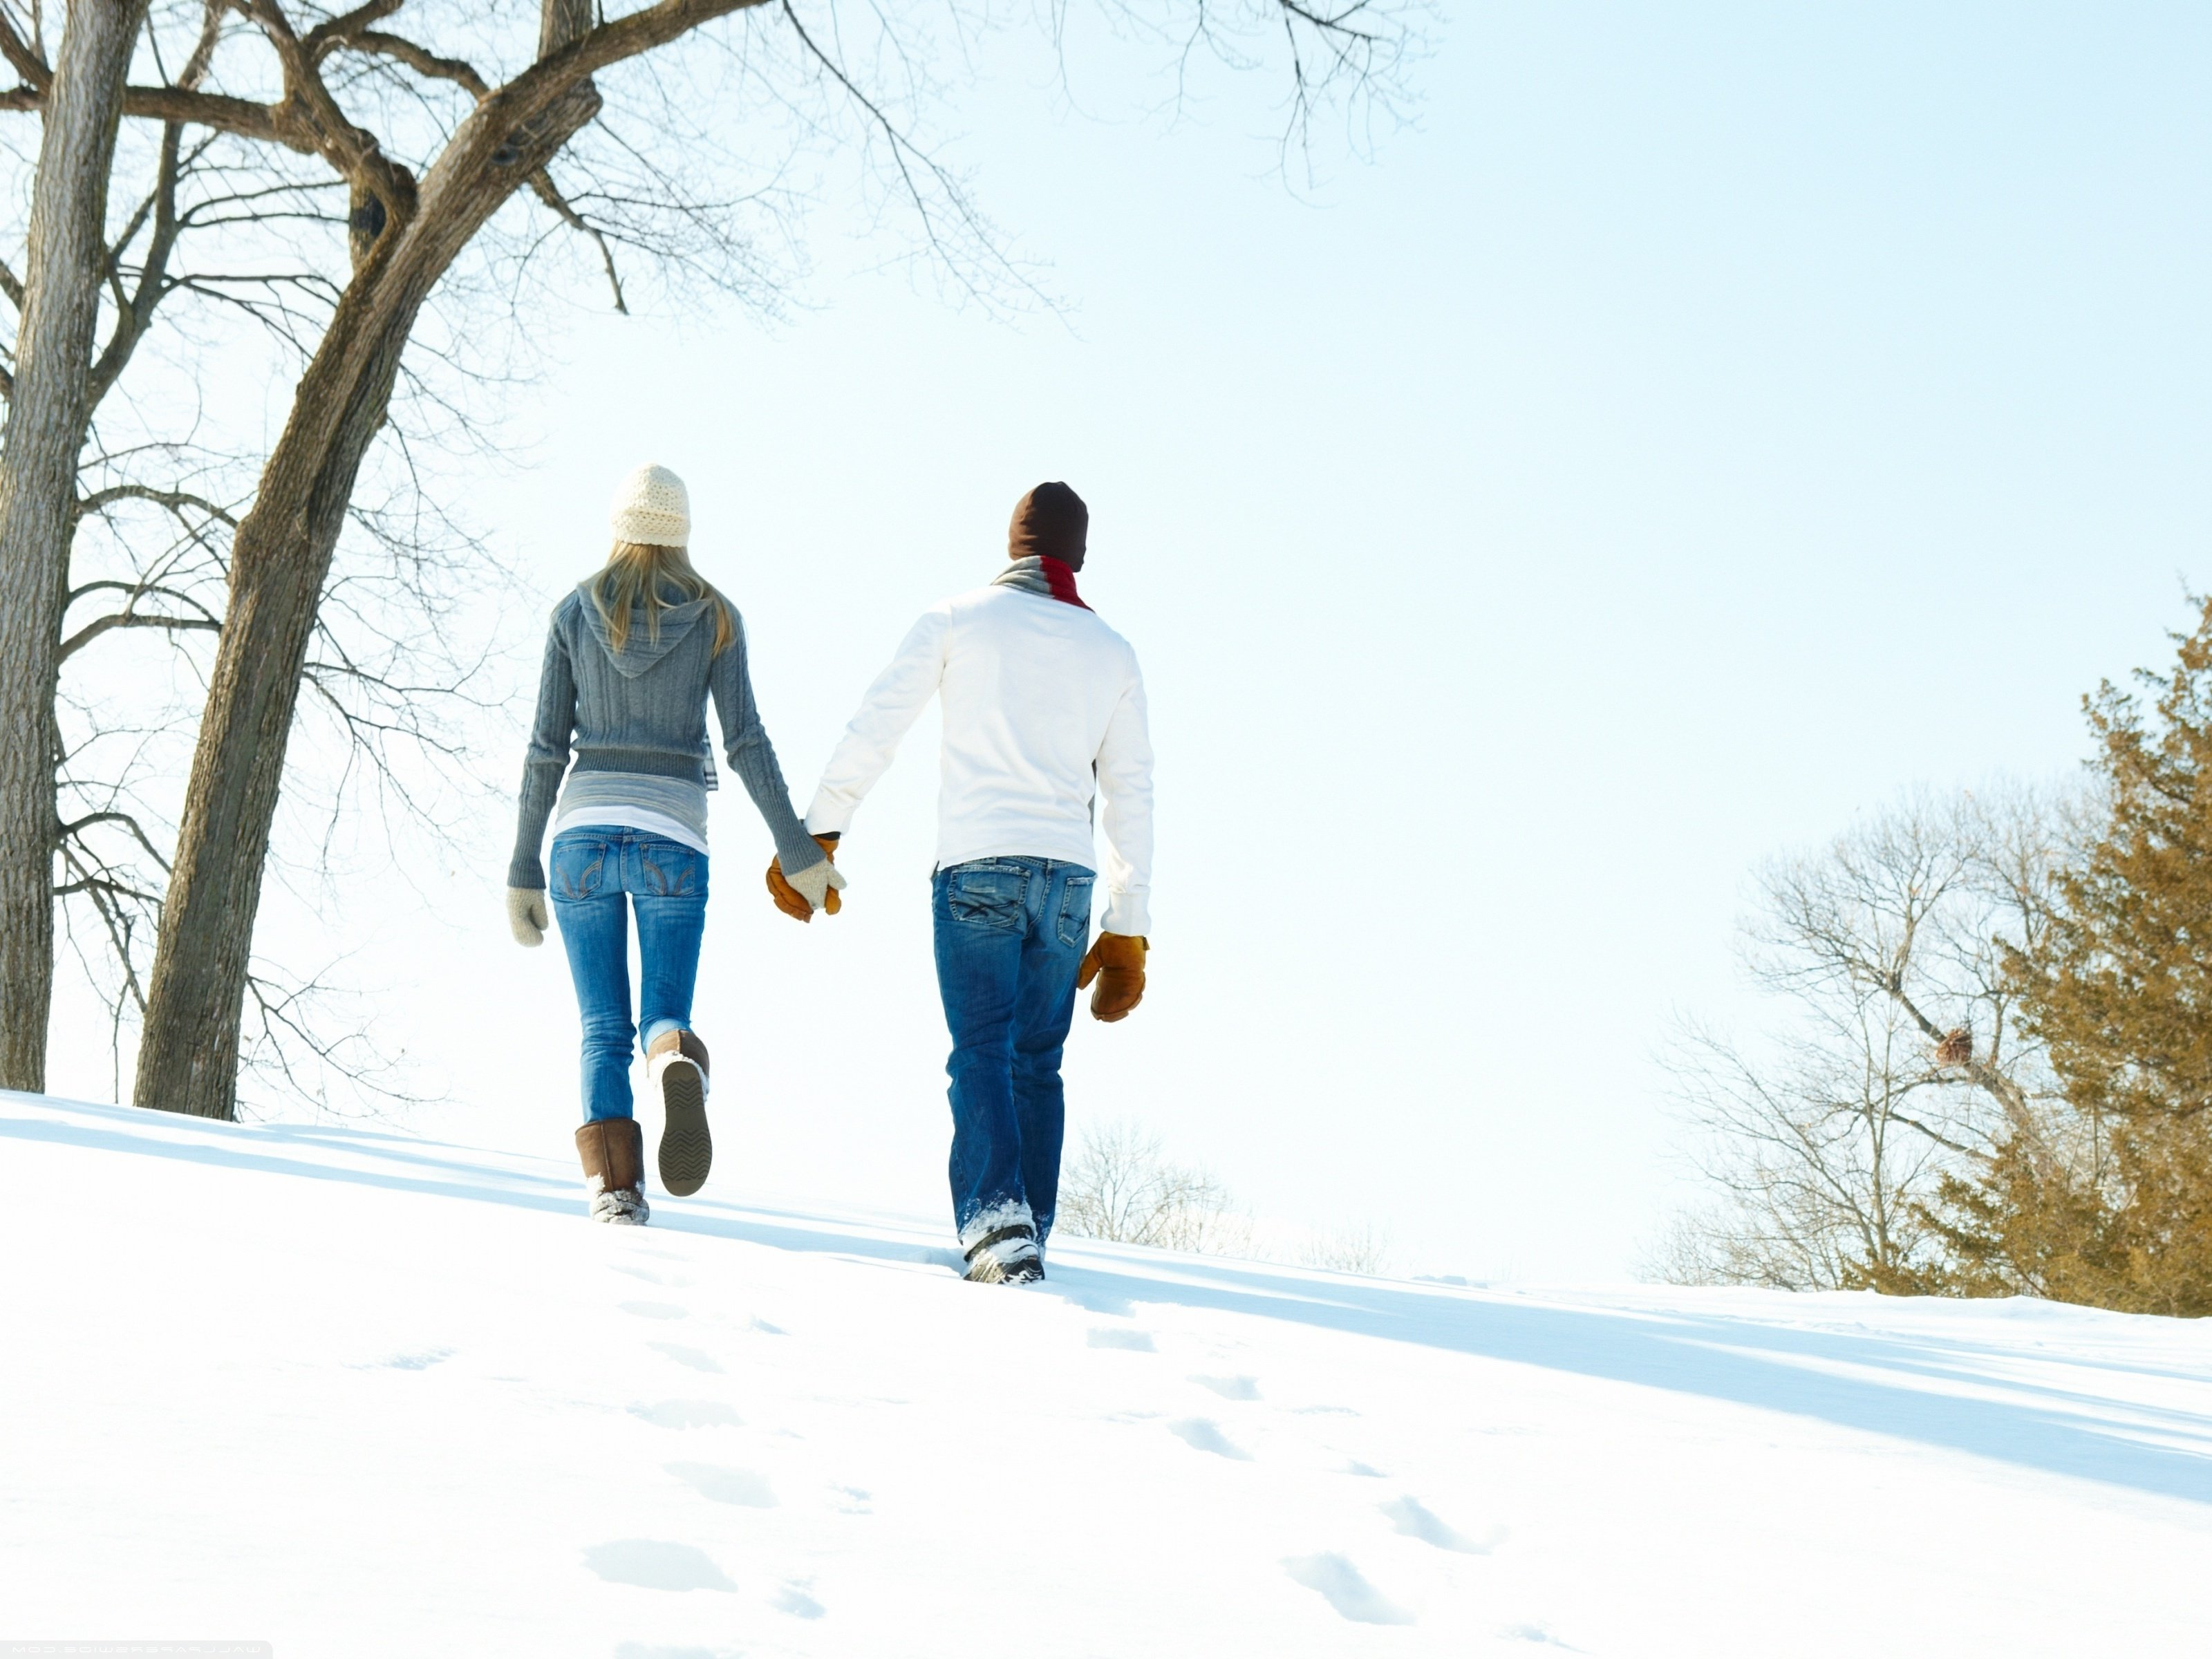 Image: Pair, guy, girl, walk, back, coming, hands, hat, winter, snow, trees